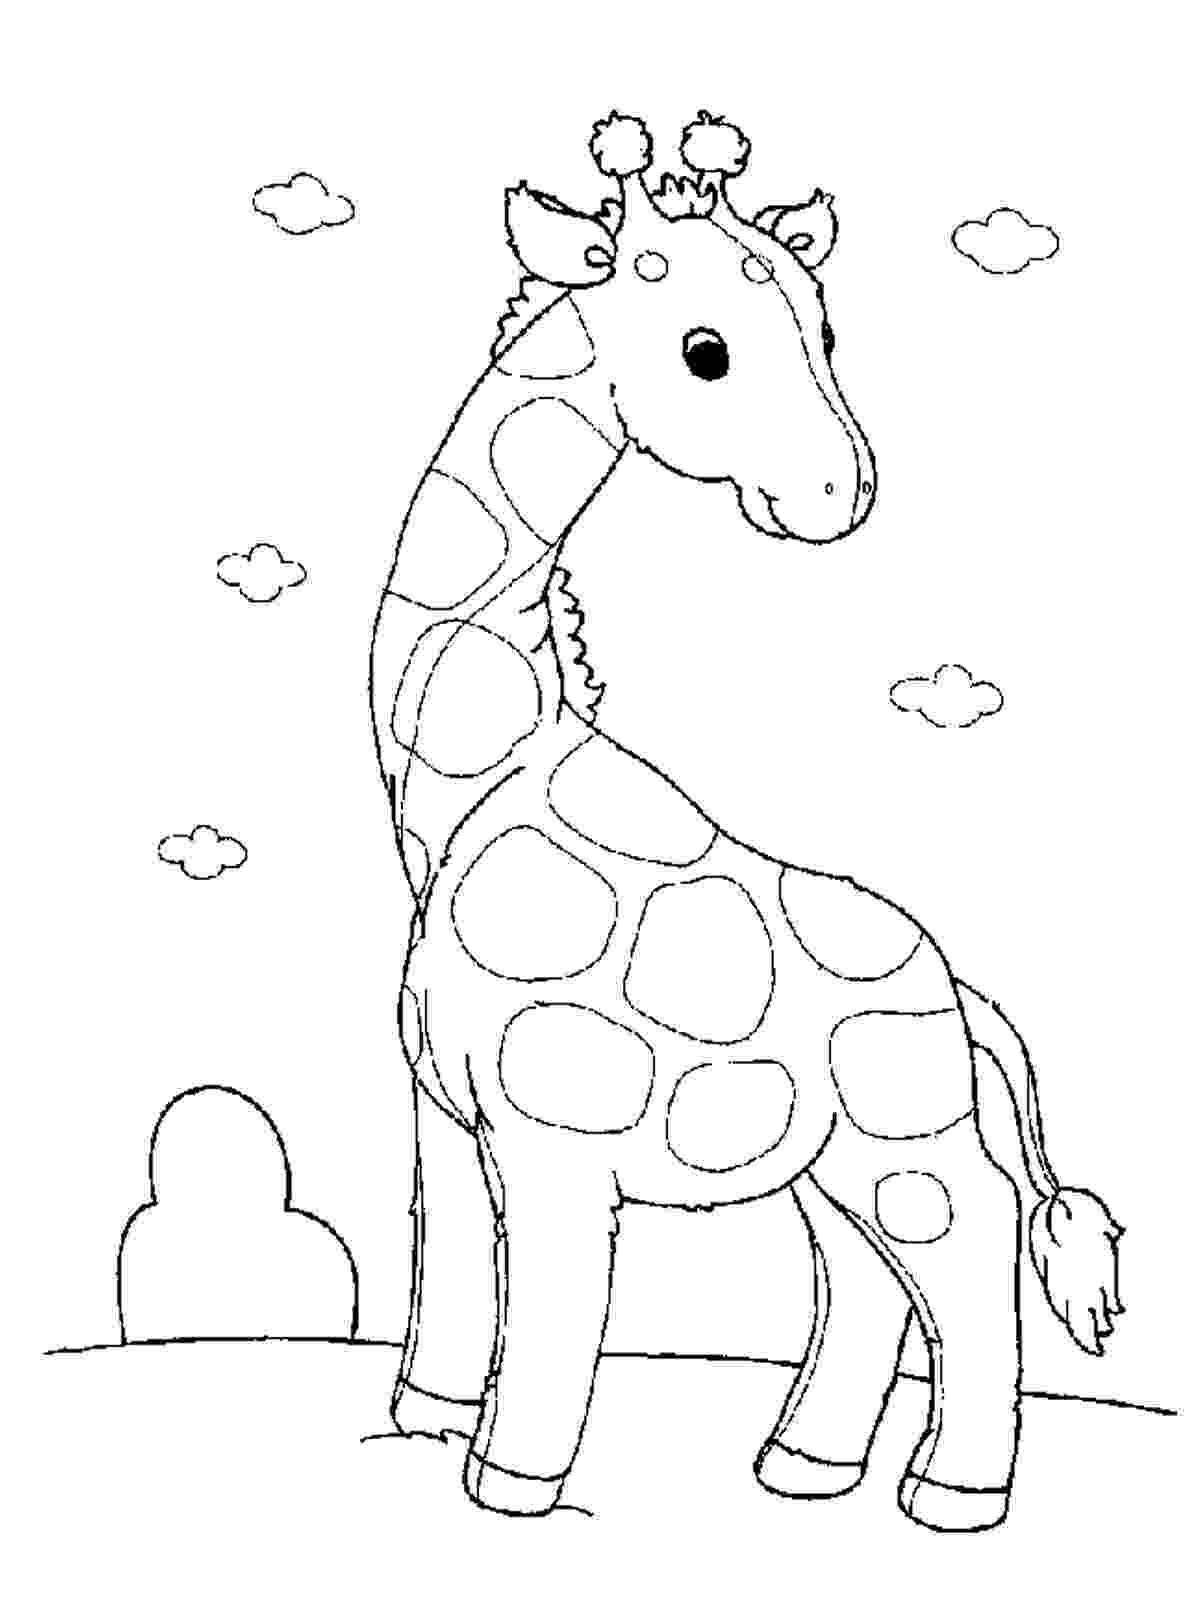 free baby animal coloring pages to print animals coloring pages getcoloringpagescom baby coloring animal free pages print to